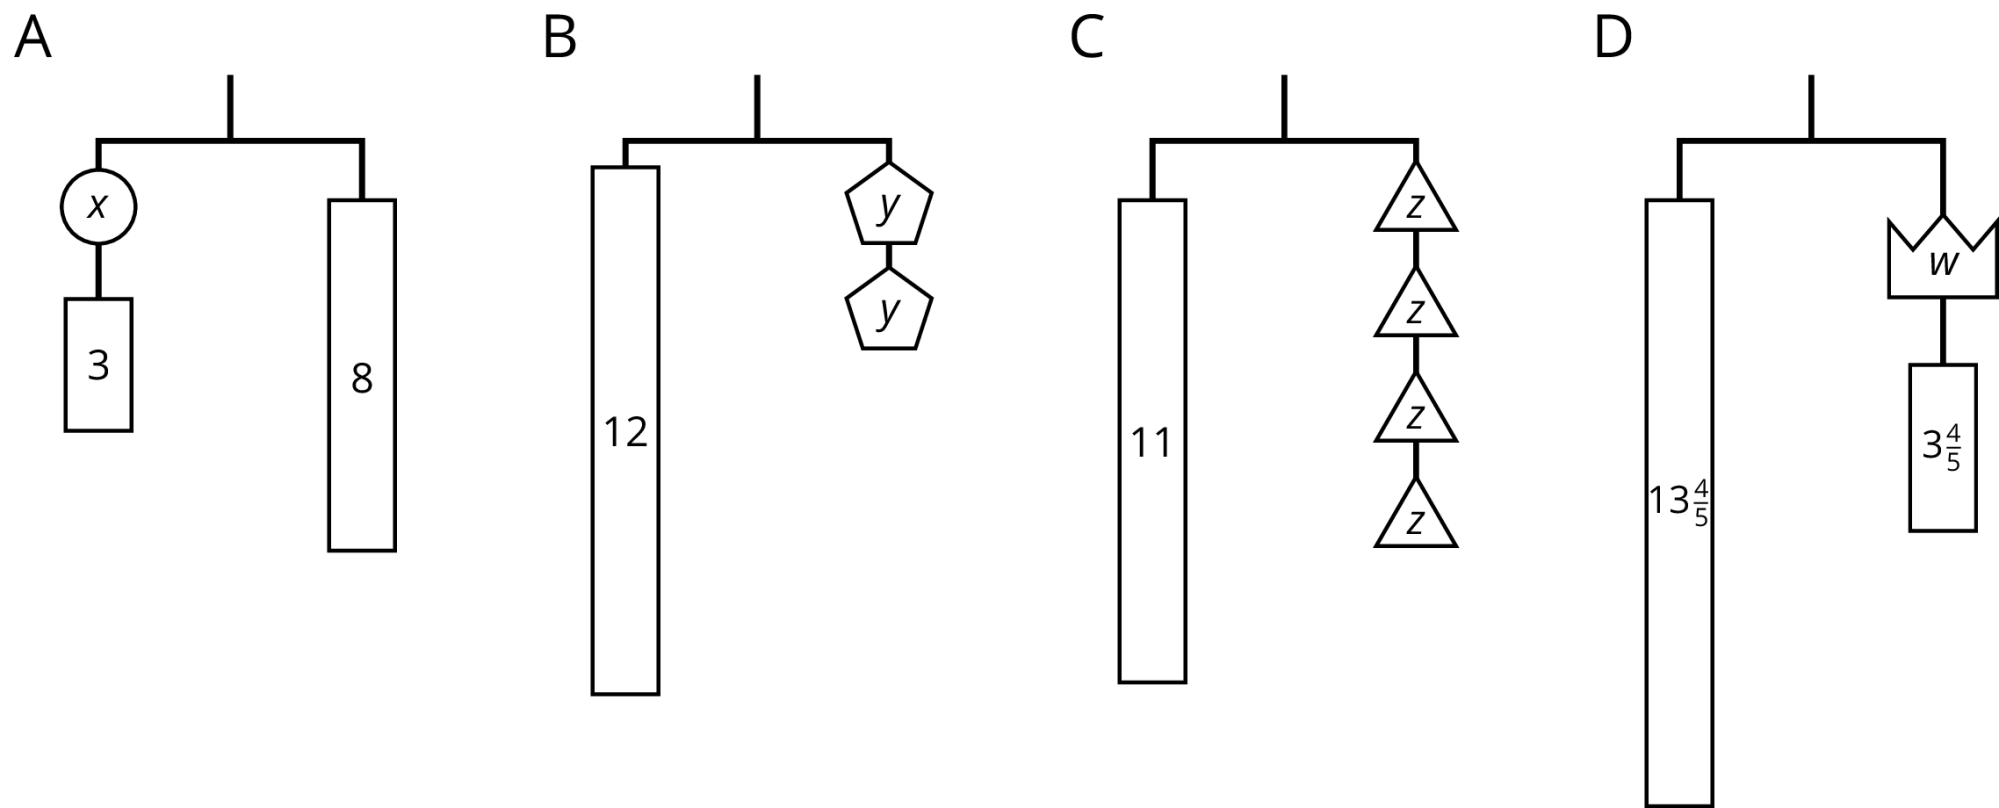 hight resolution of 3 3 connecting diagrams to equations and solutions